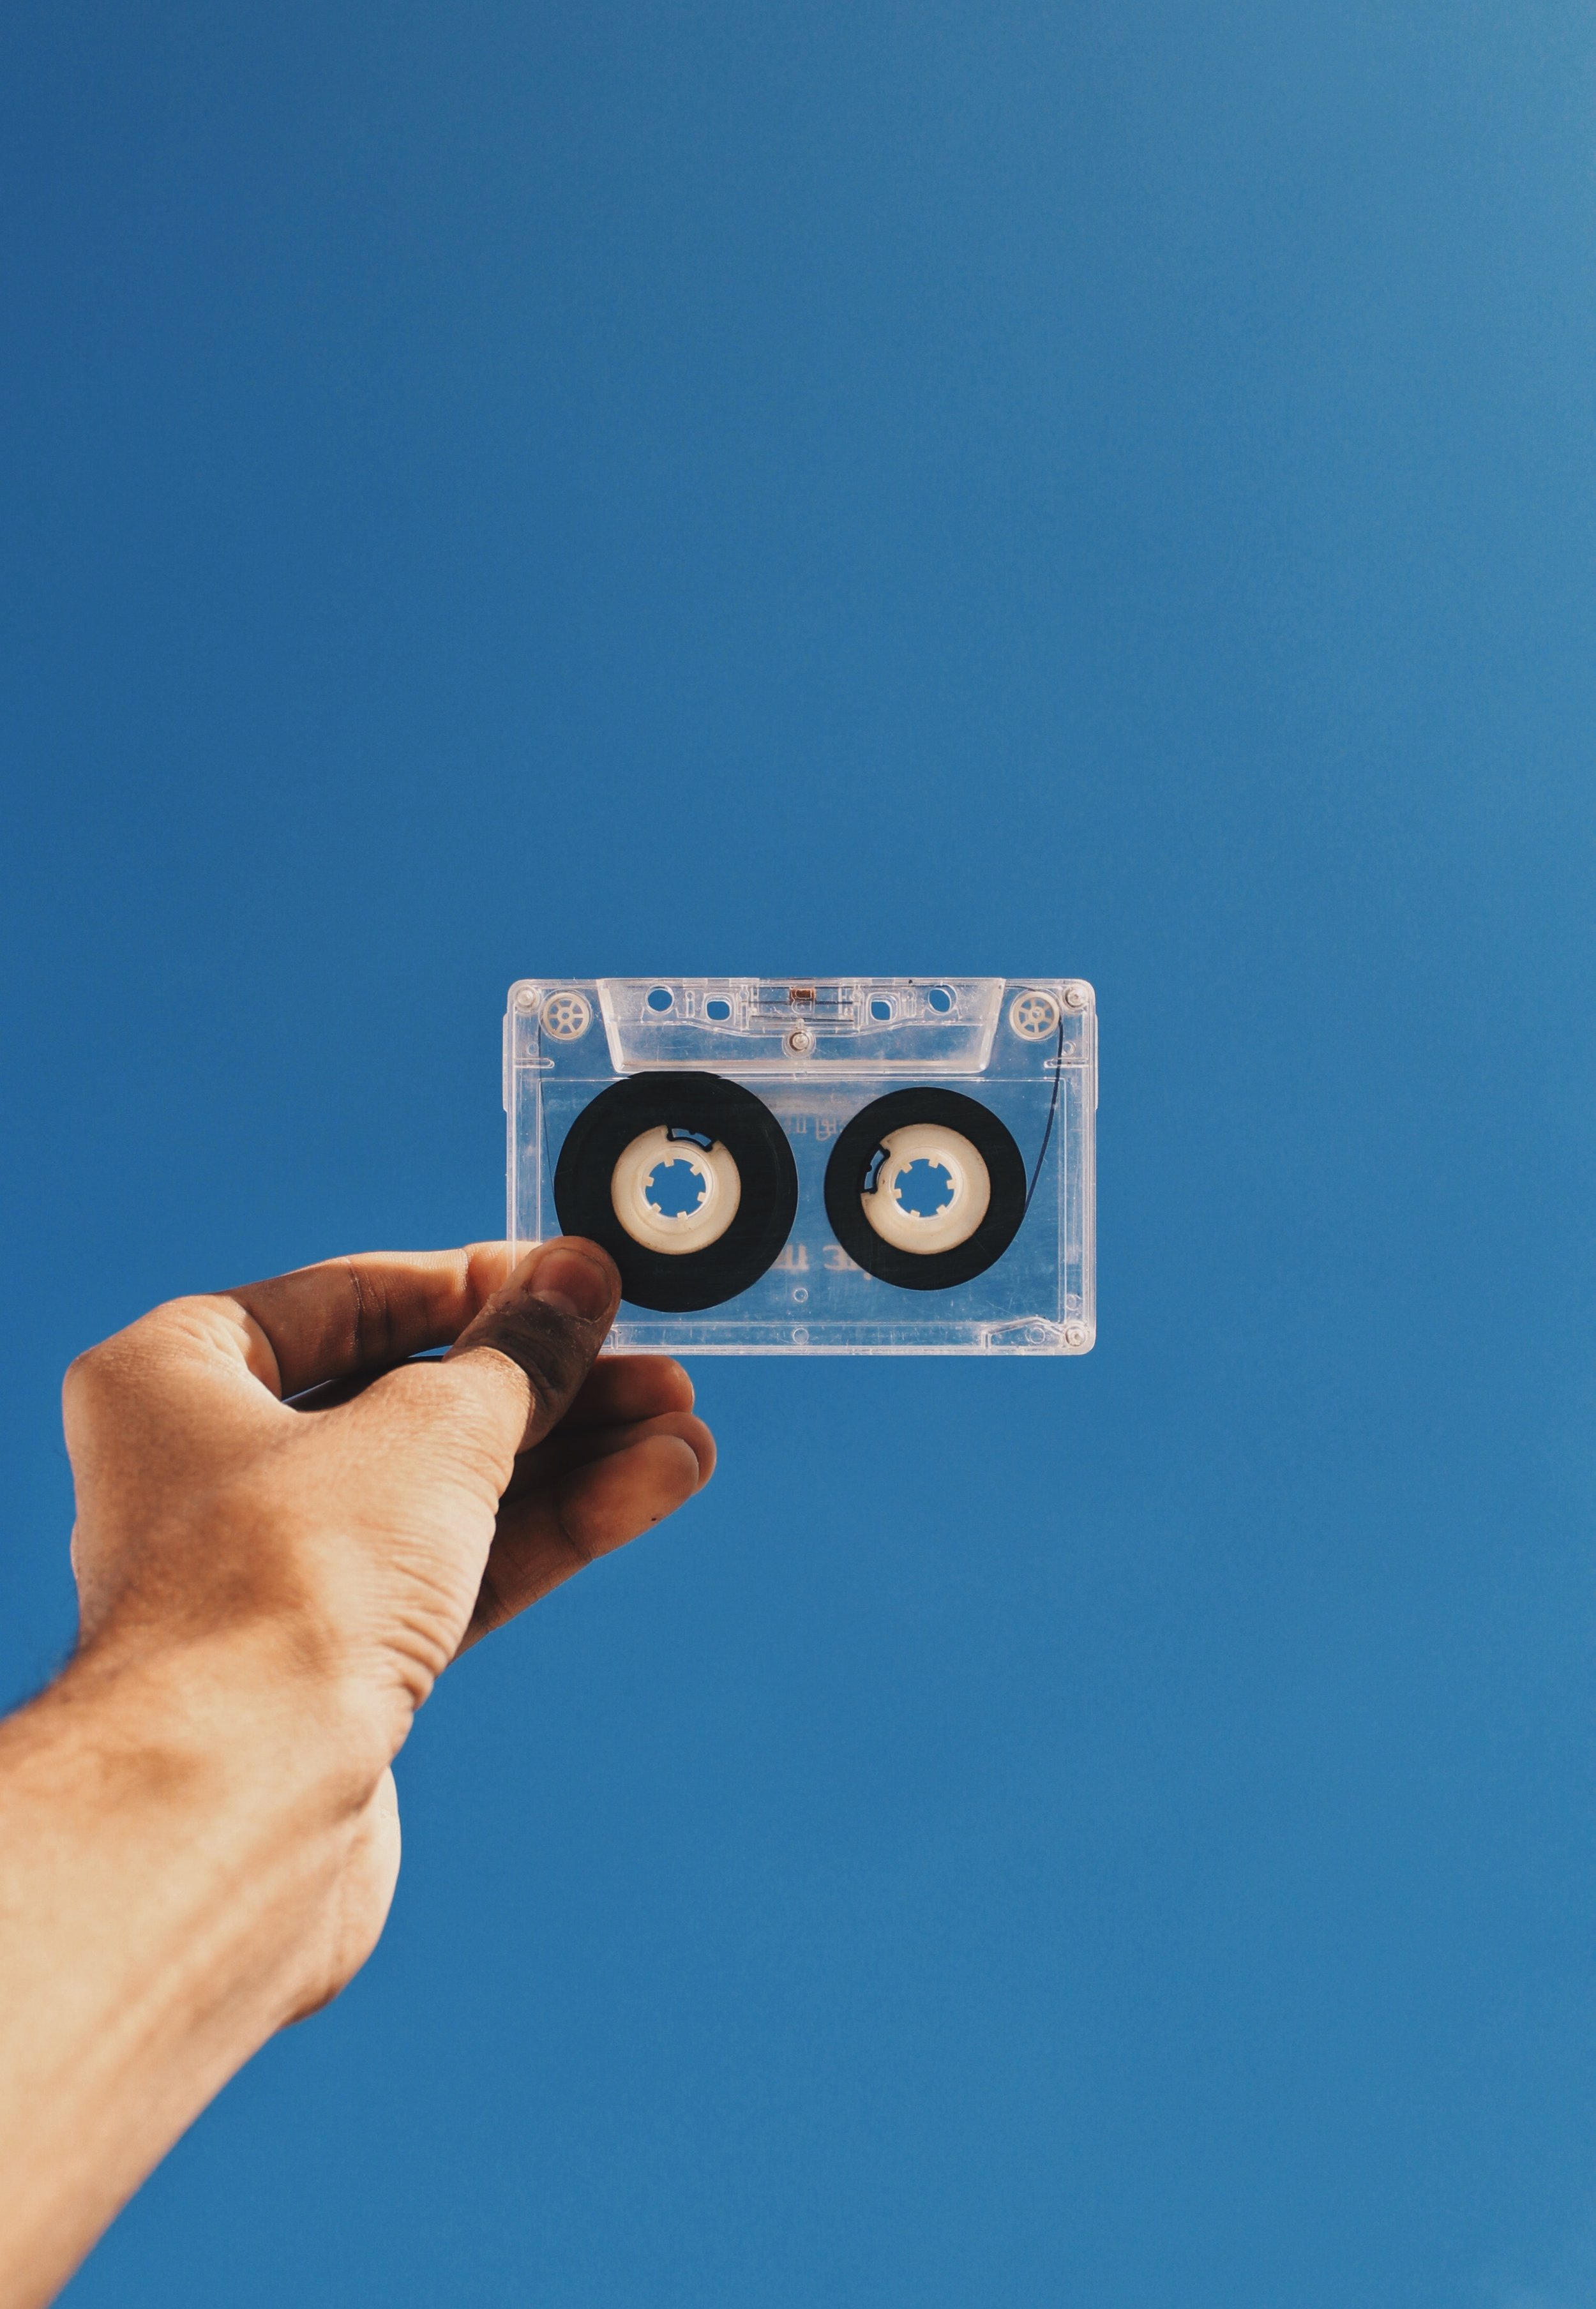 analogue-cassette-cassette-tape-1760826.jpg